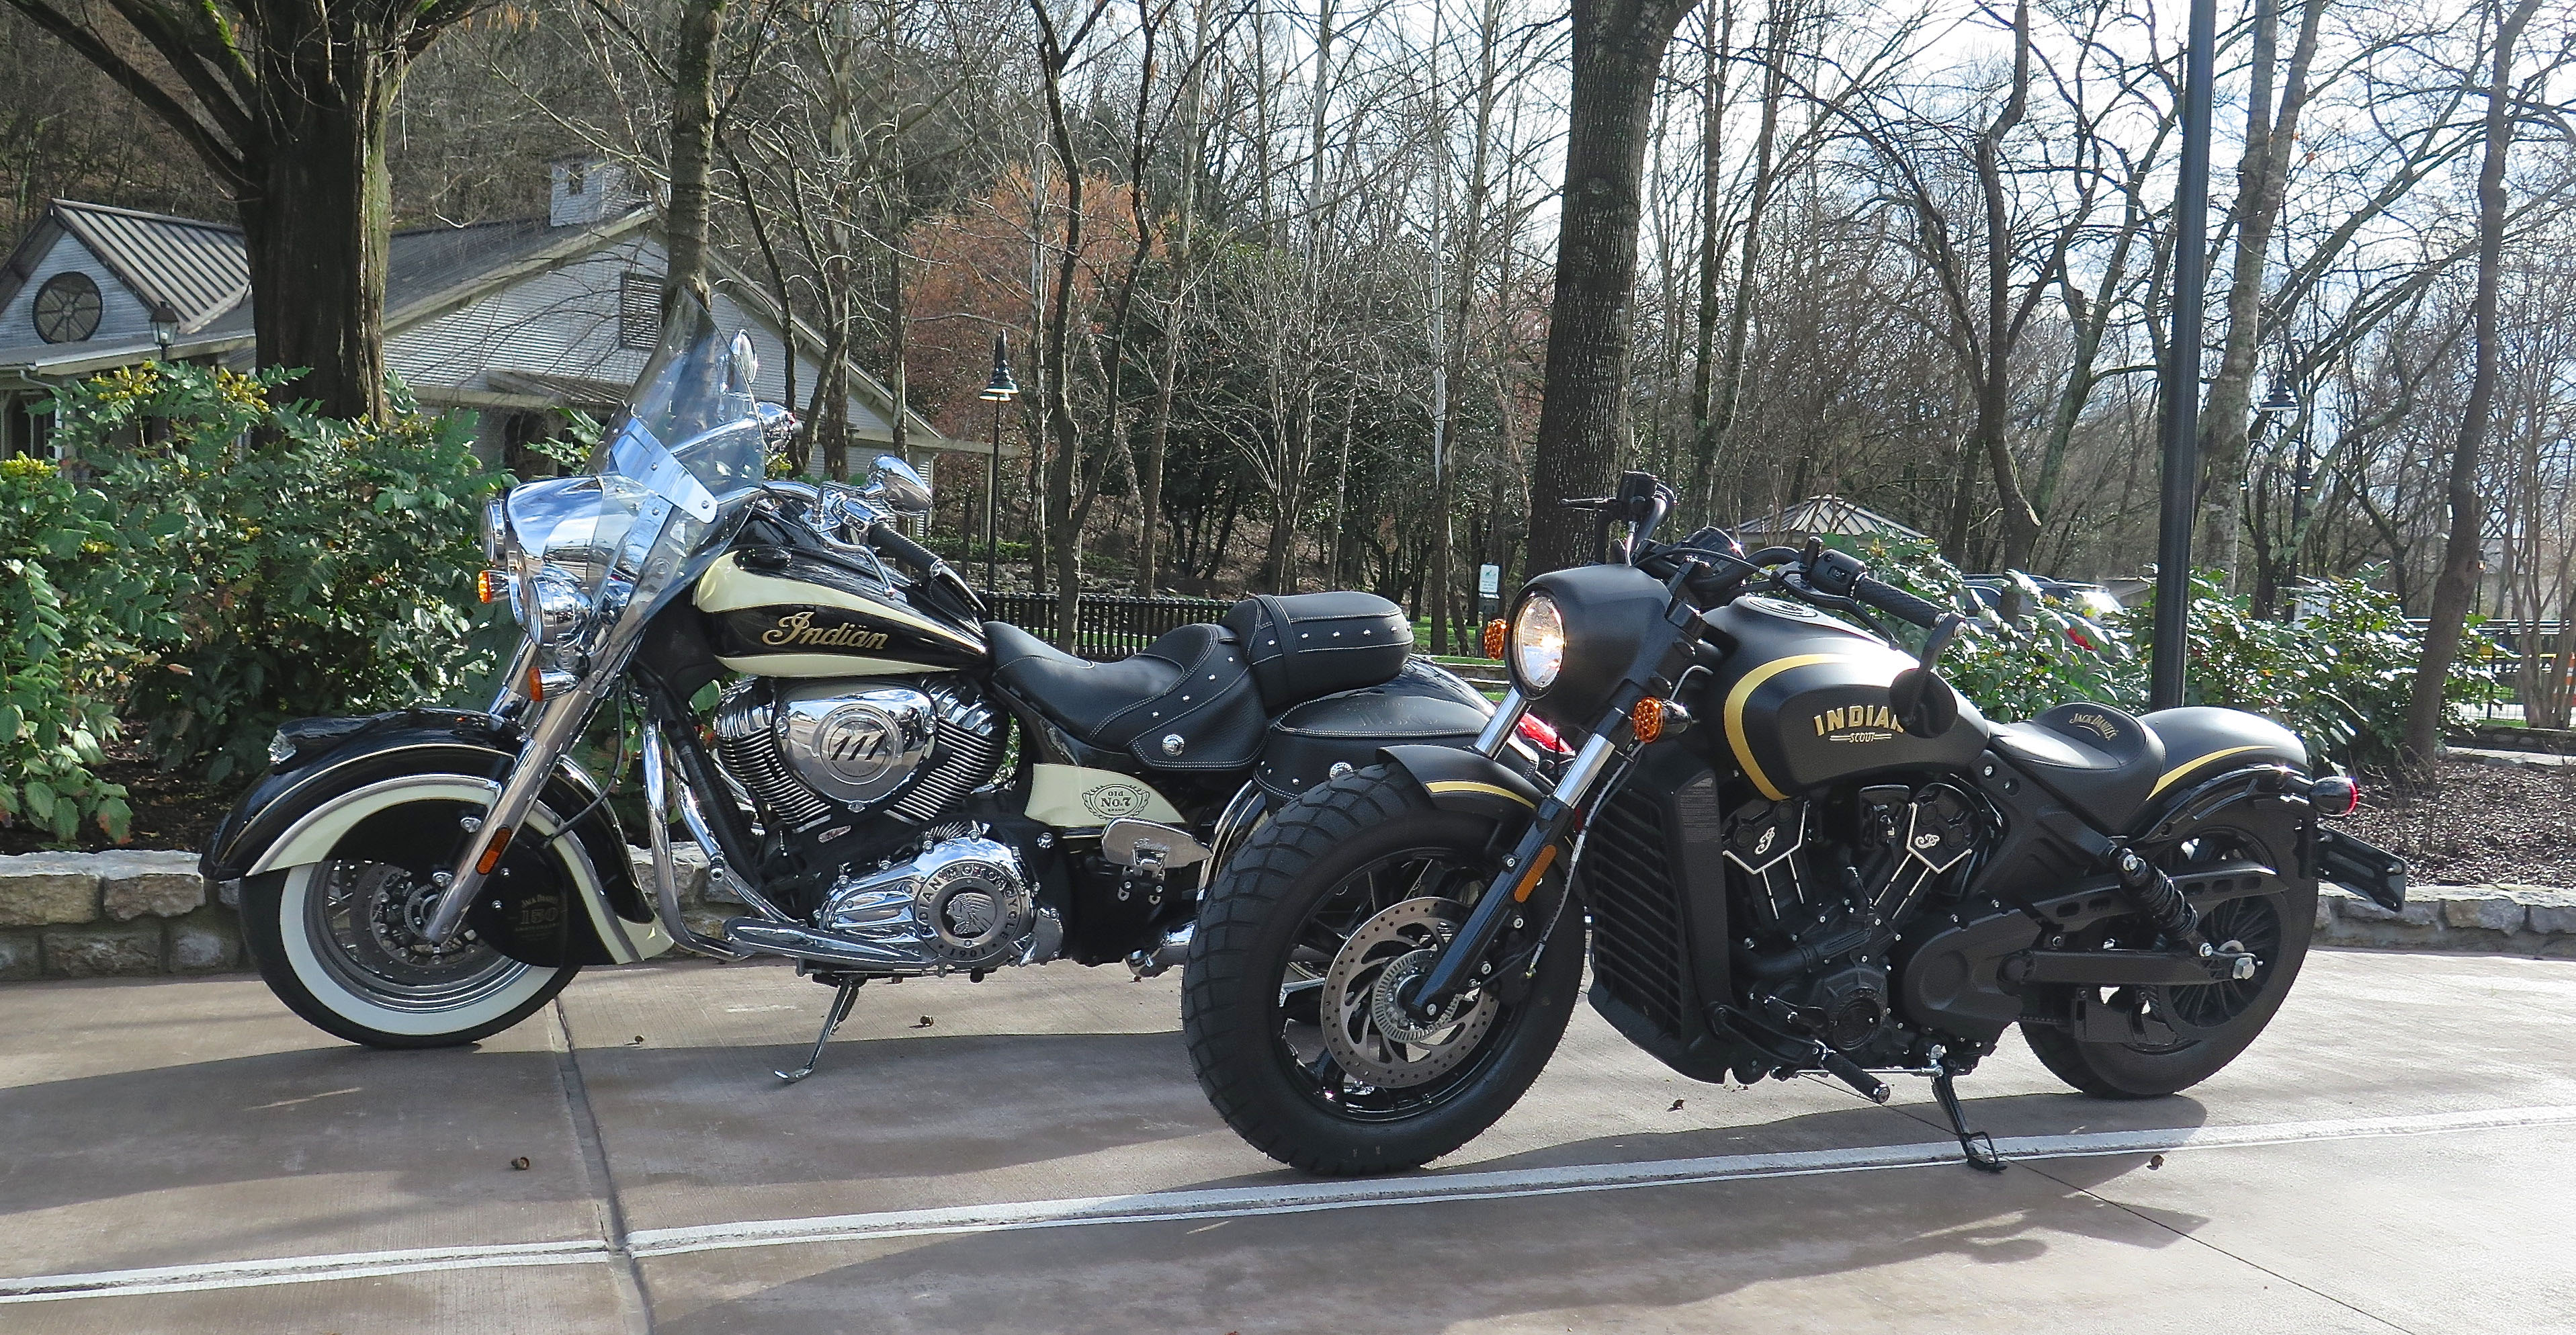 2018 Indian Jack Daniels Scout Bobber Review - First Ride